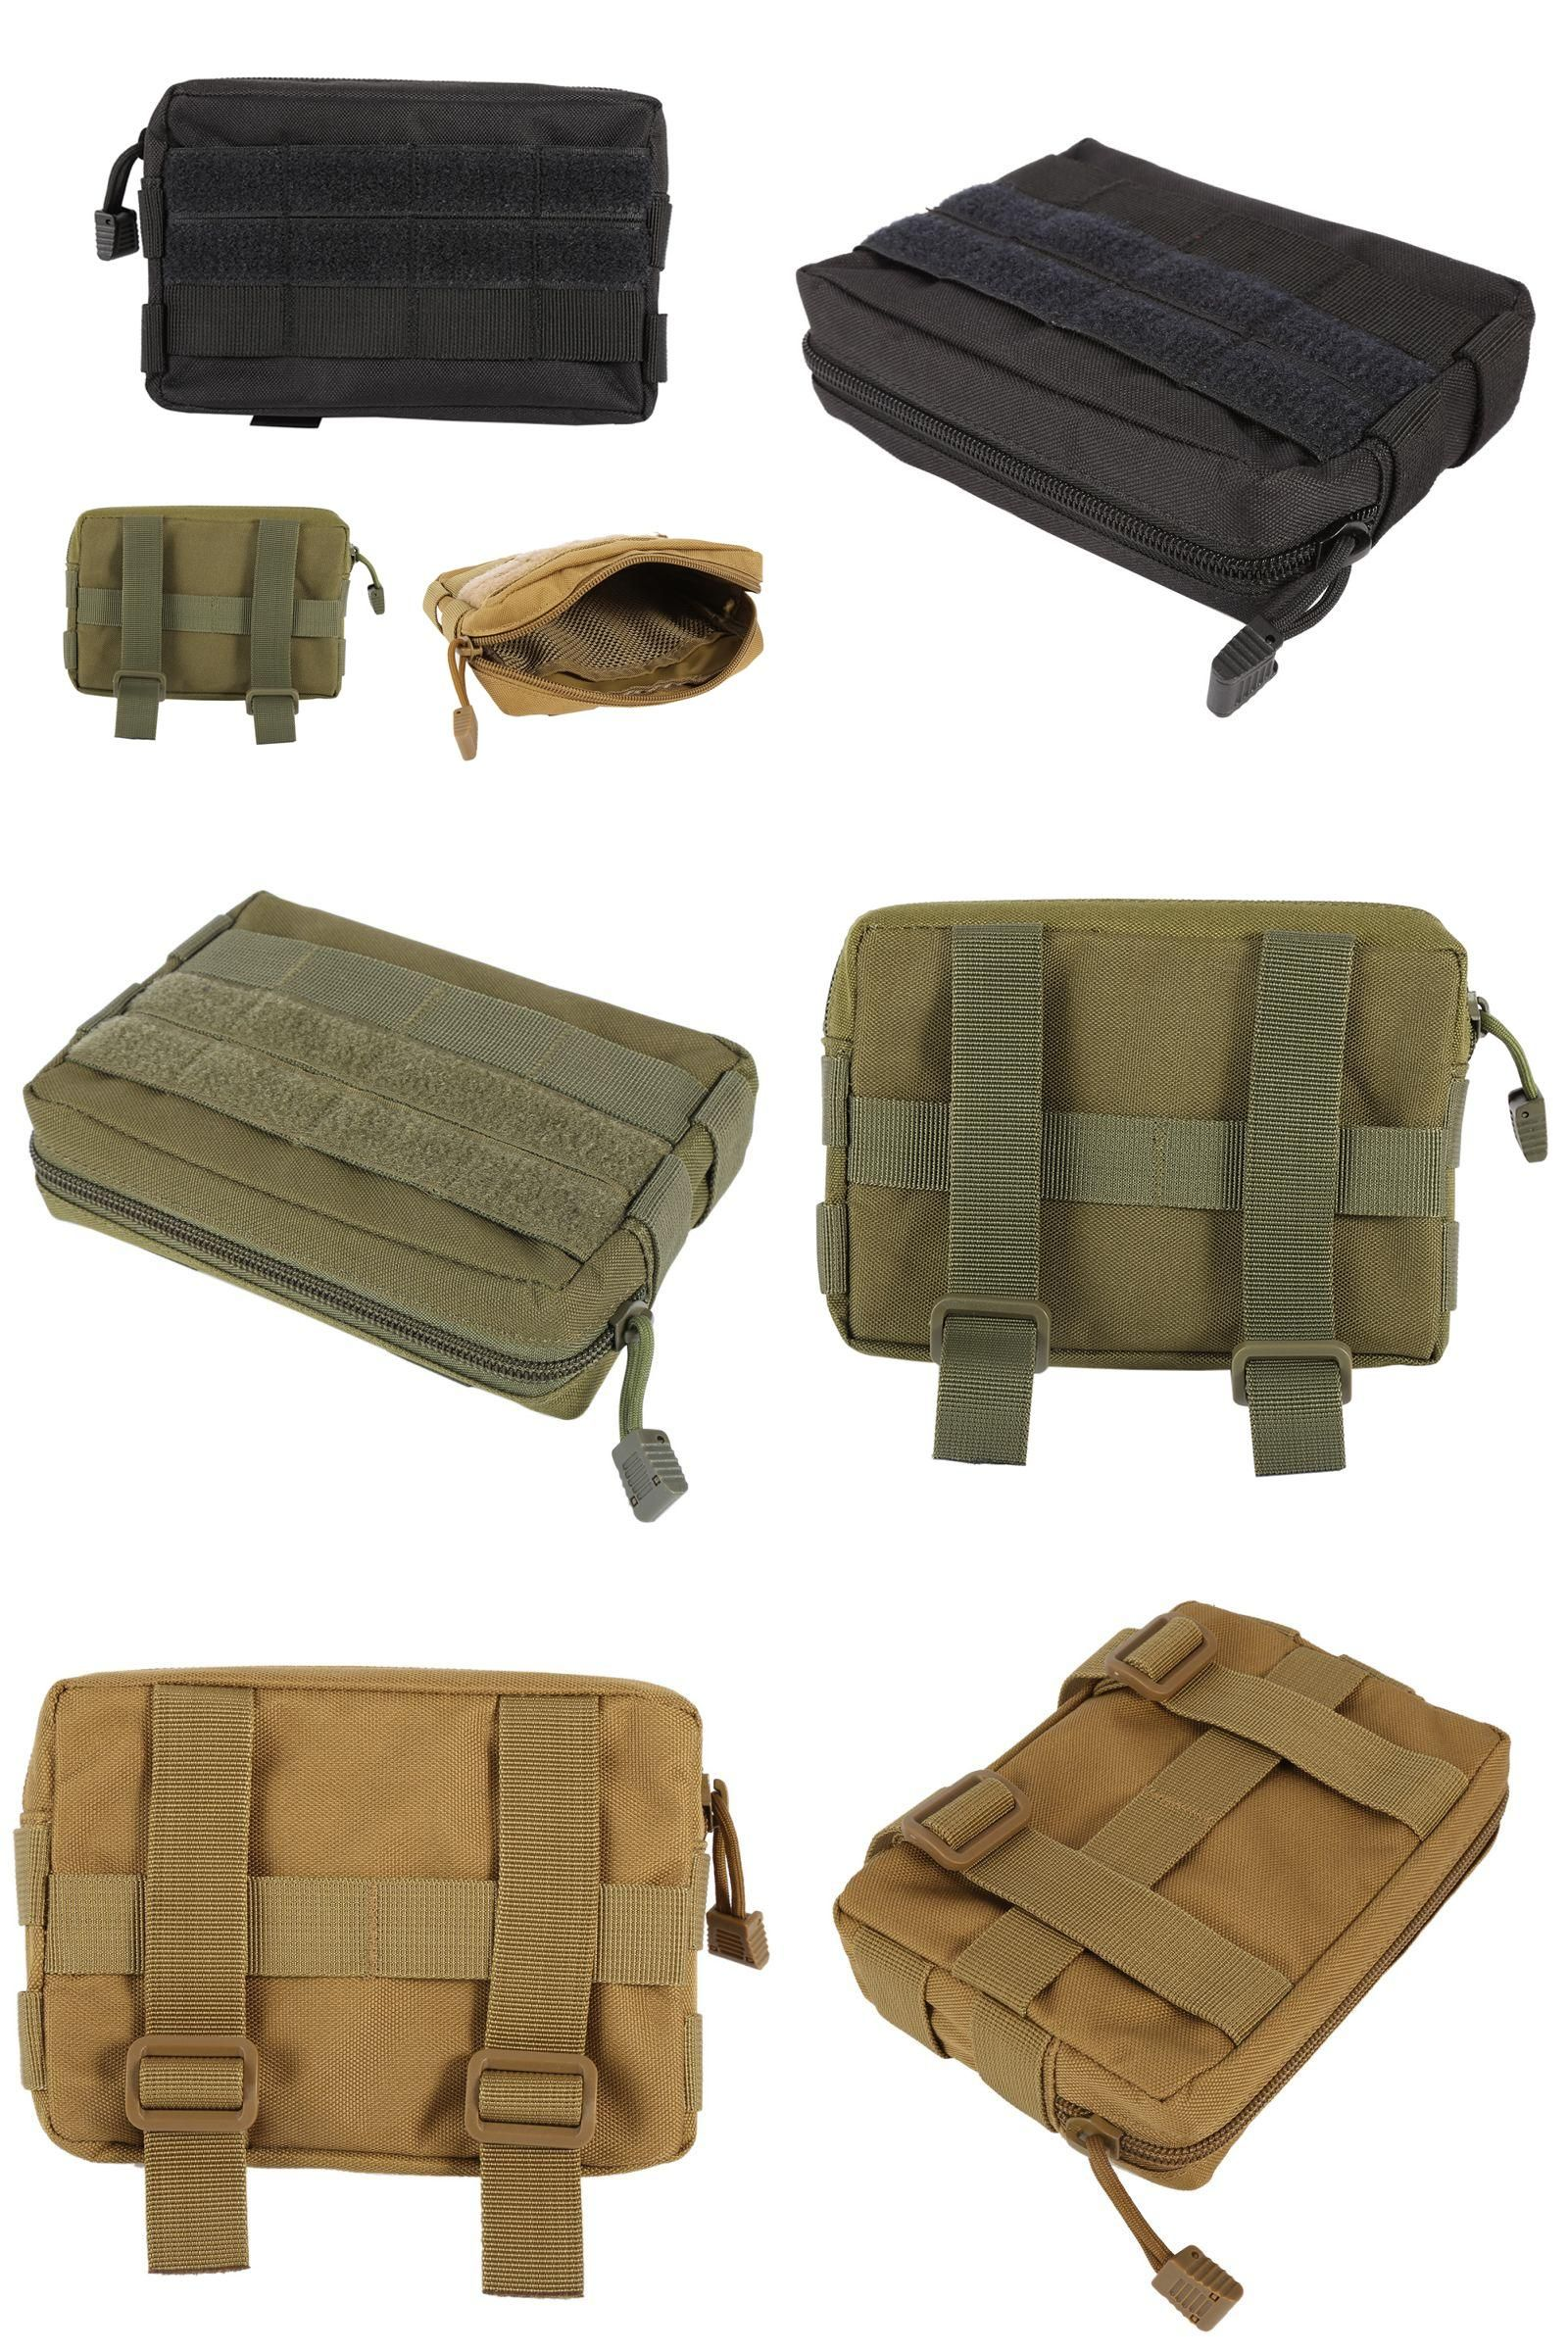 Climbing Bags Camping & Hiking High Quality Nylon Tactical Military Small Utility Pouch Nylon Bag Waterproof Mini Bagged Gear Tools Pouch Kit Accessories Bag